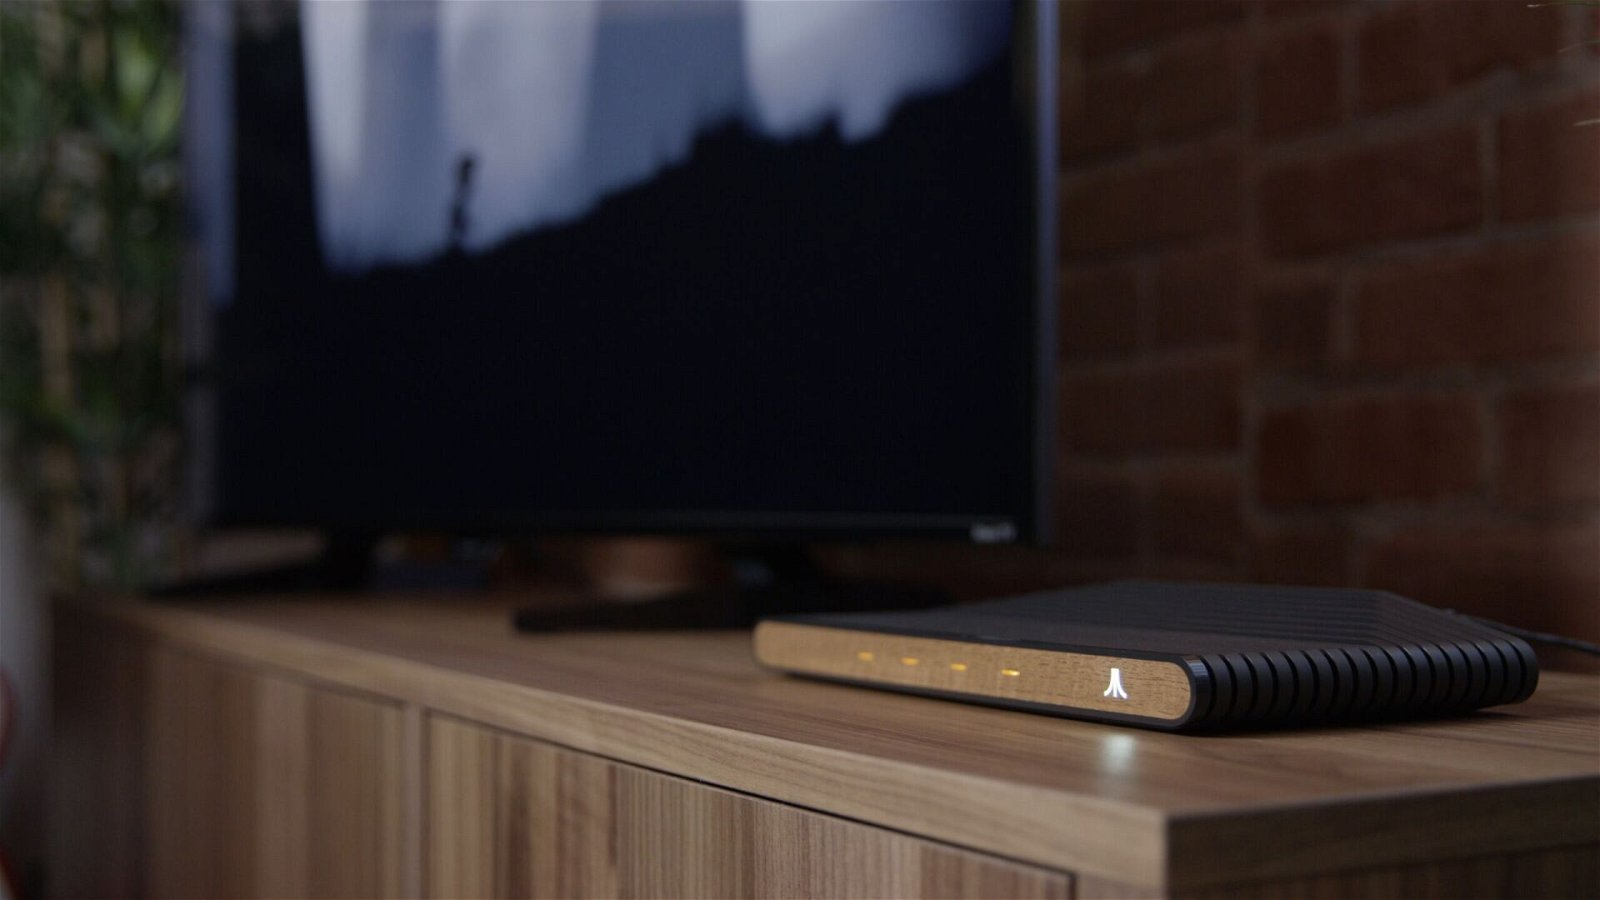 Special Edition Atari VCS Console Sells Out, Replaced with New Tribute Edition